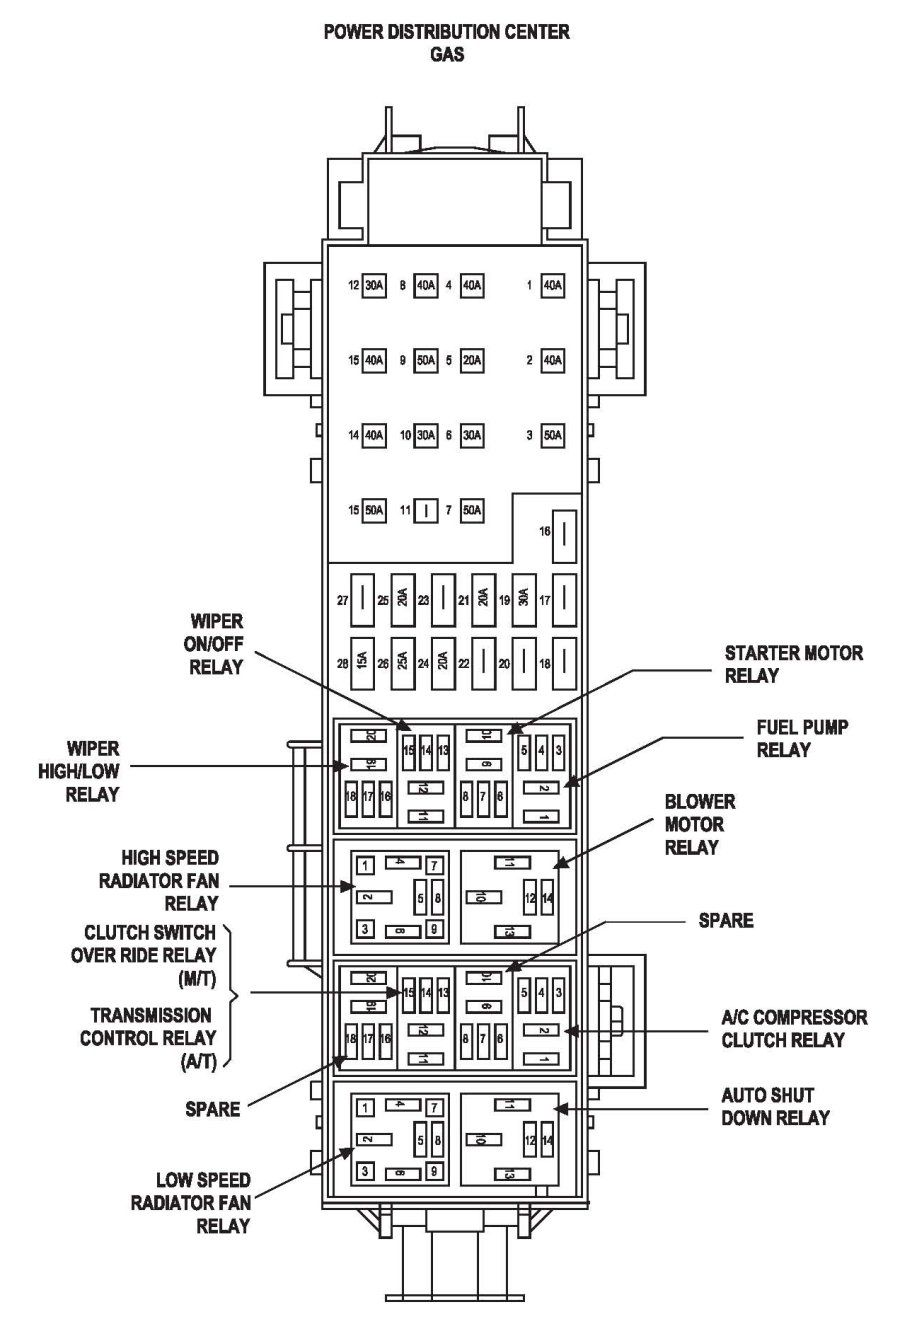 medium resolution of 2008 dodge nitro fuse box layout wiring diagram post 2008 dodge nitro fuse box layout